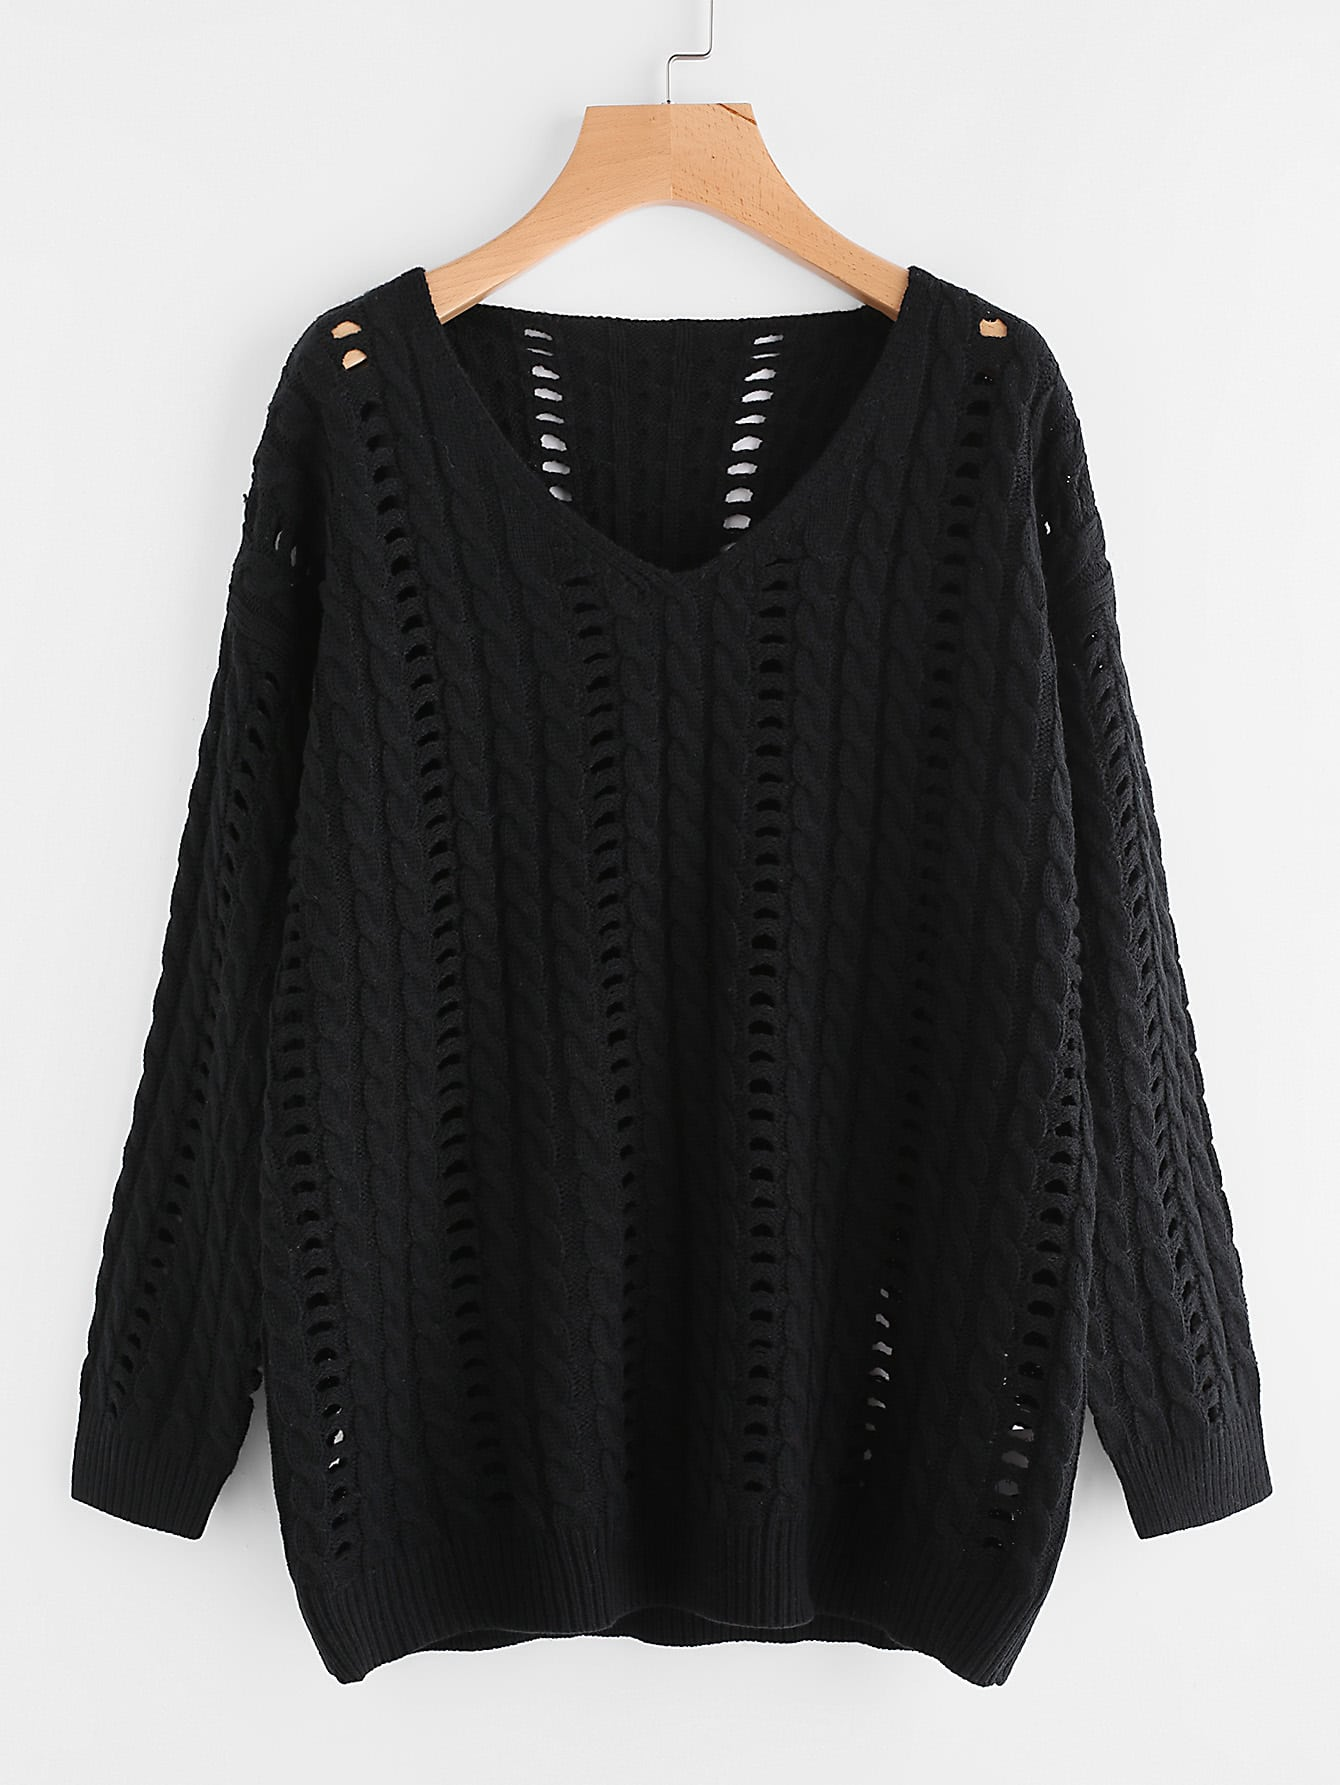 Hollow Out Cable Knit Jumper sweater170629467